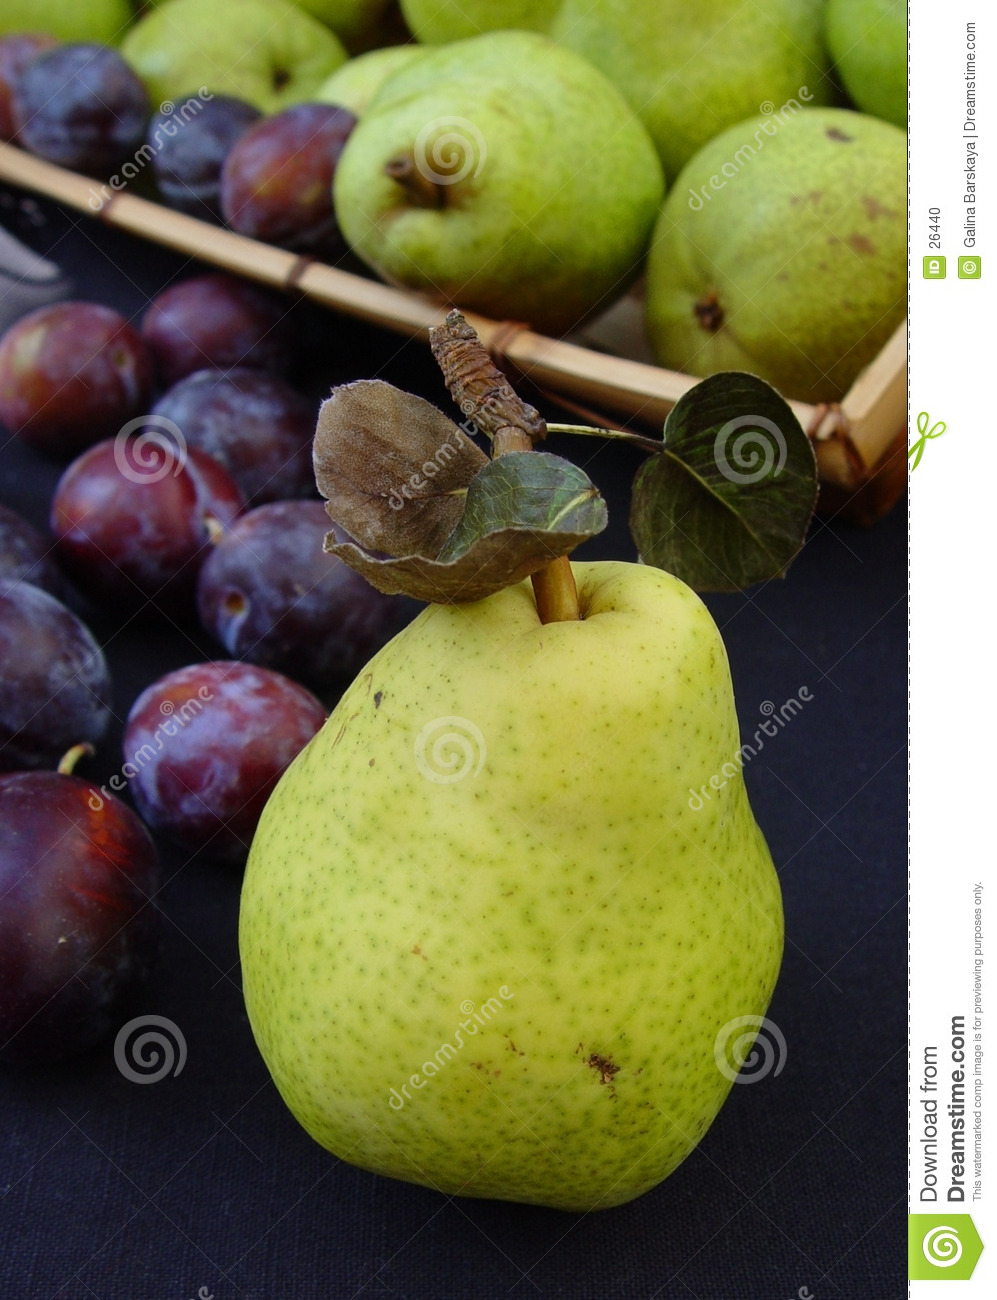 Green pears and italian plums